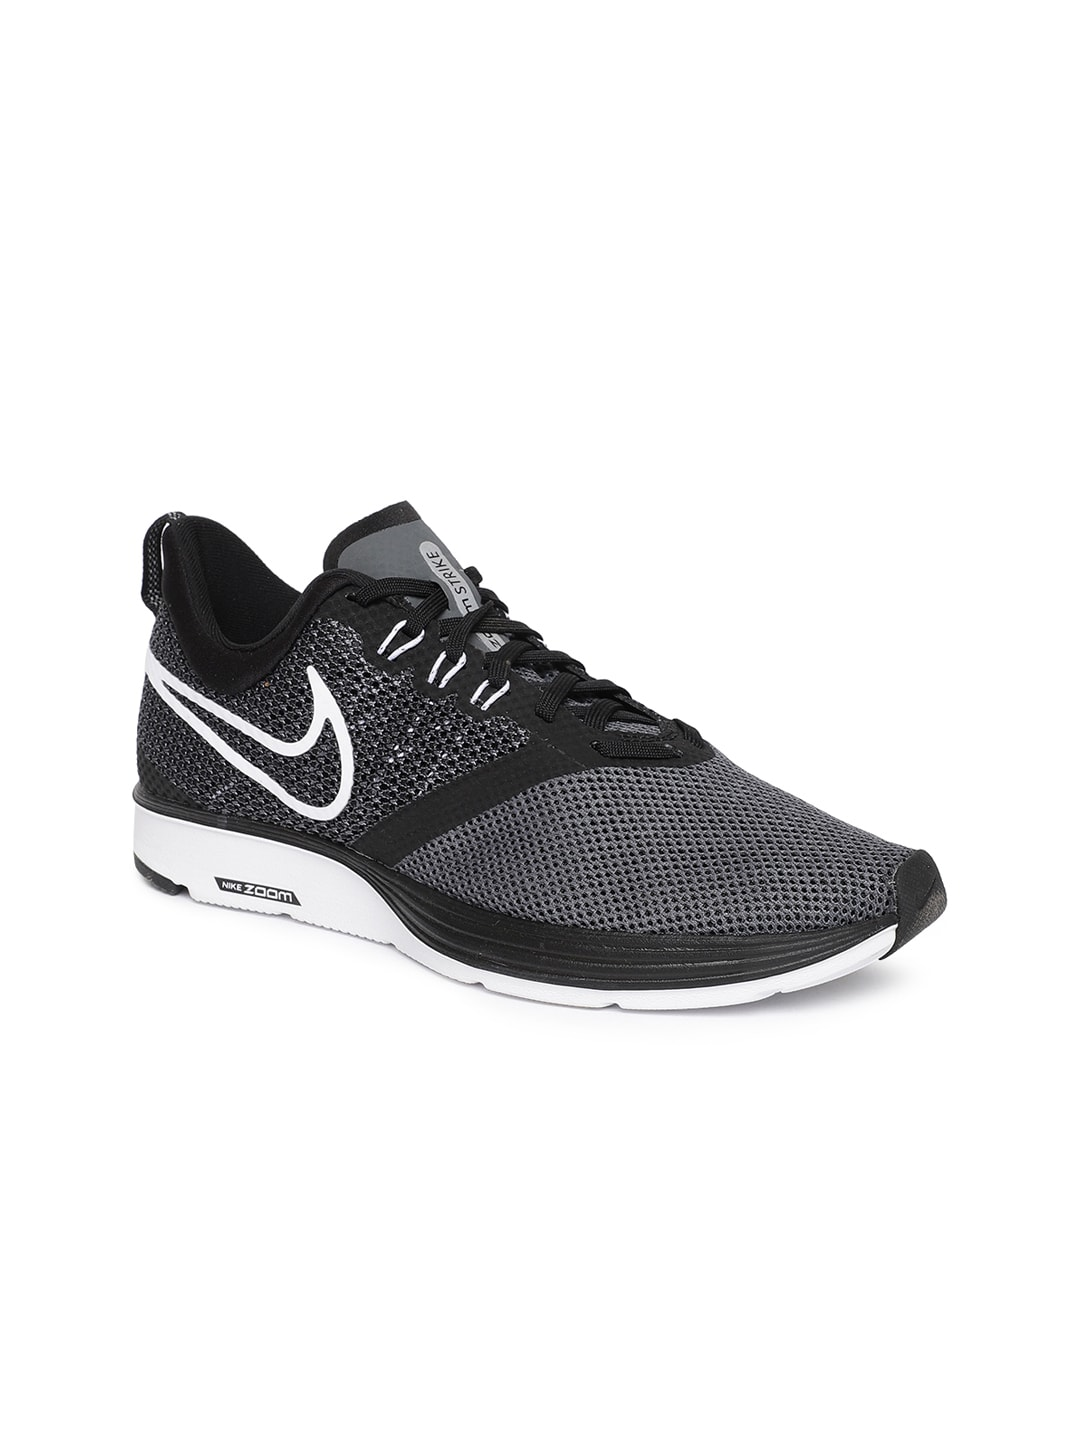 0f59b6ea0418 Football Sports Shoes - Buy Football Sports Shoes Online in India